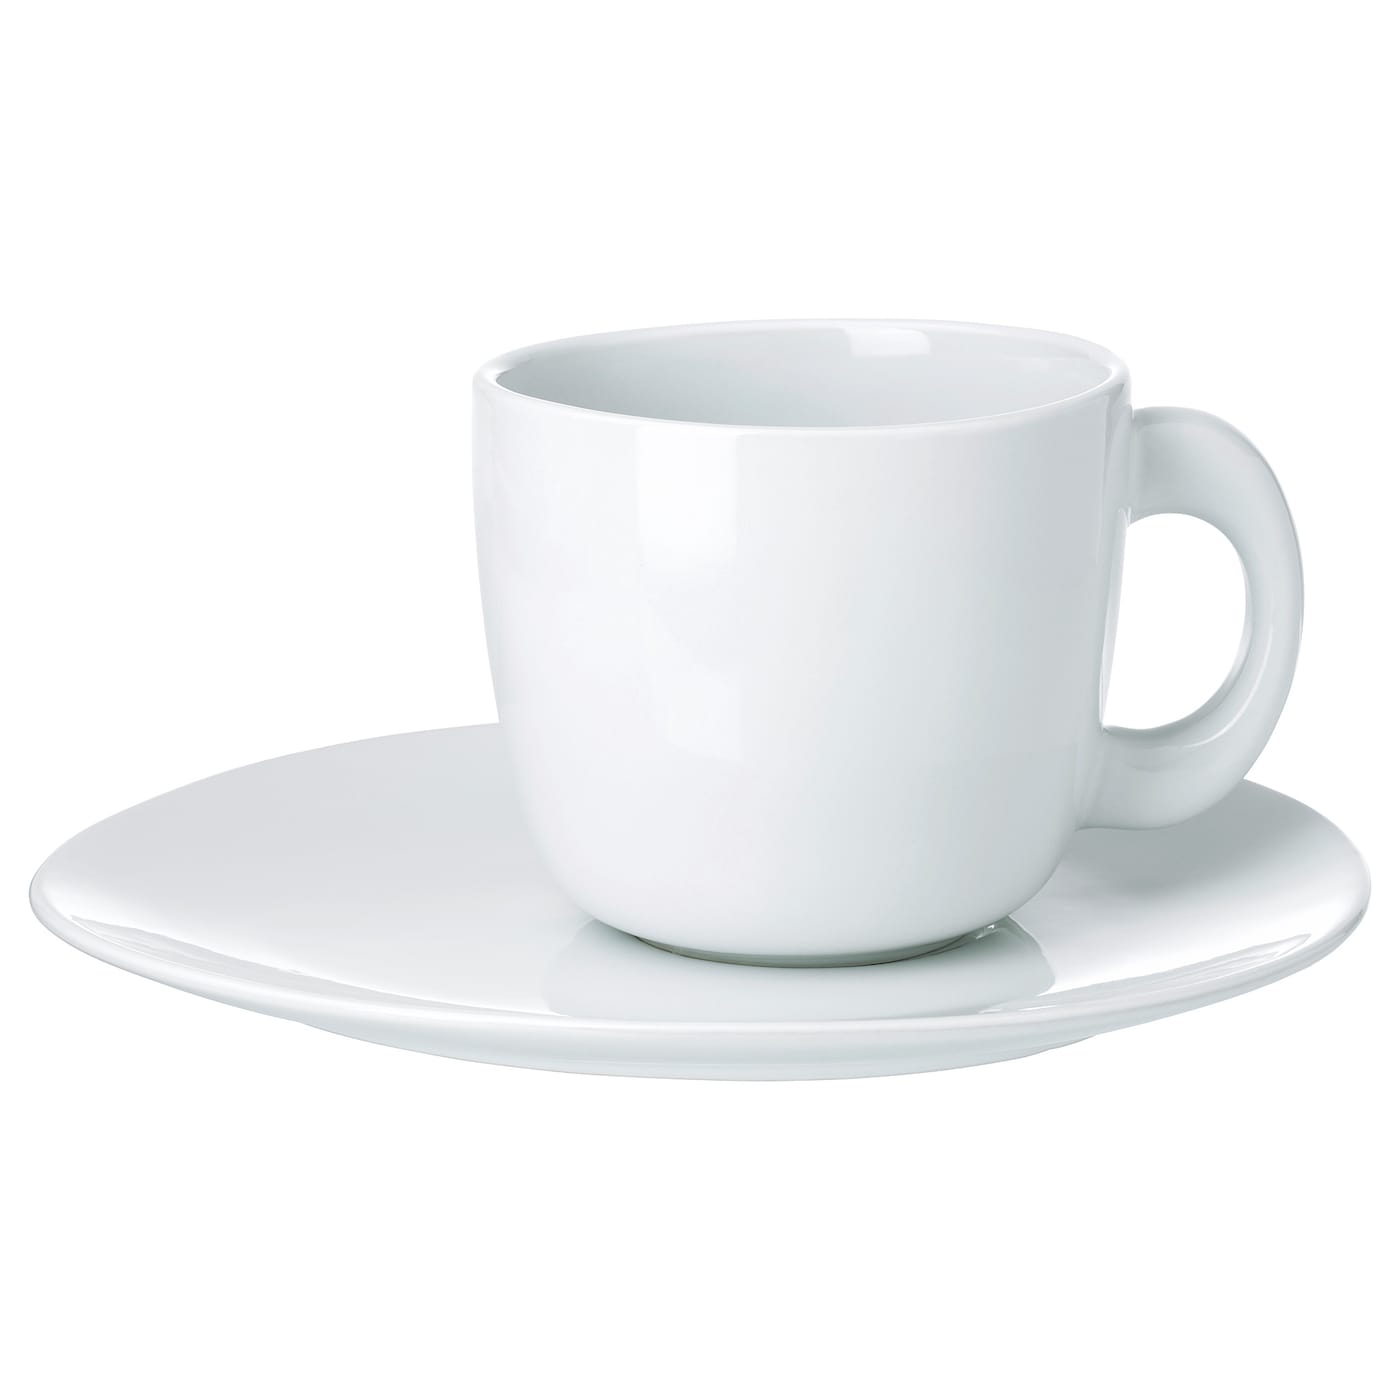 IKEA SOMMAR 2019 cup with saucer